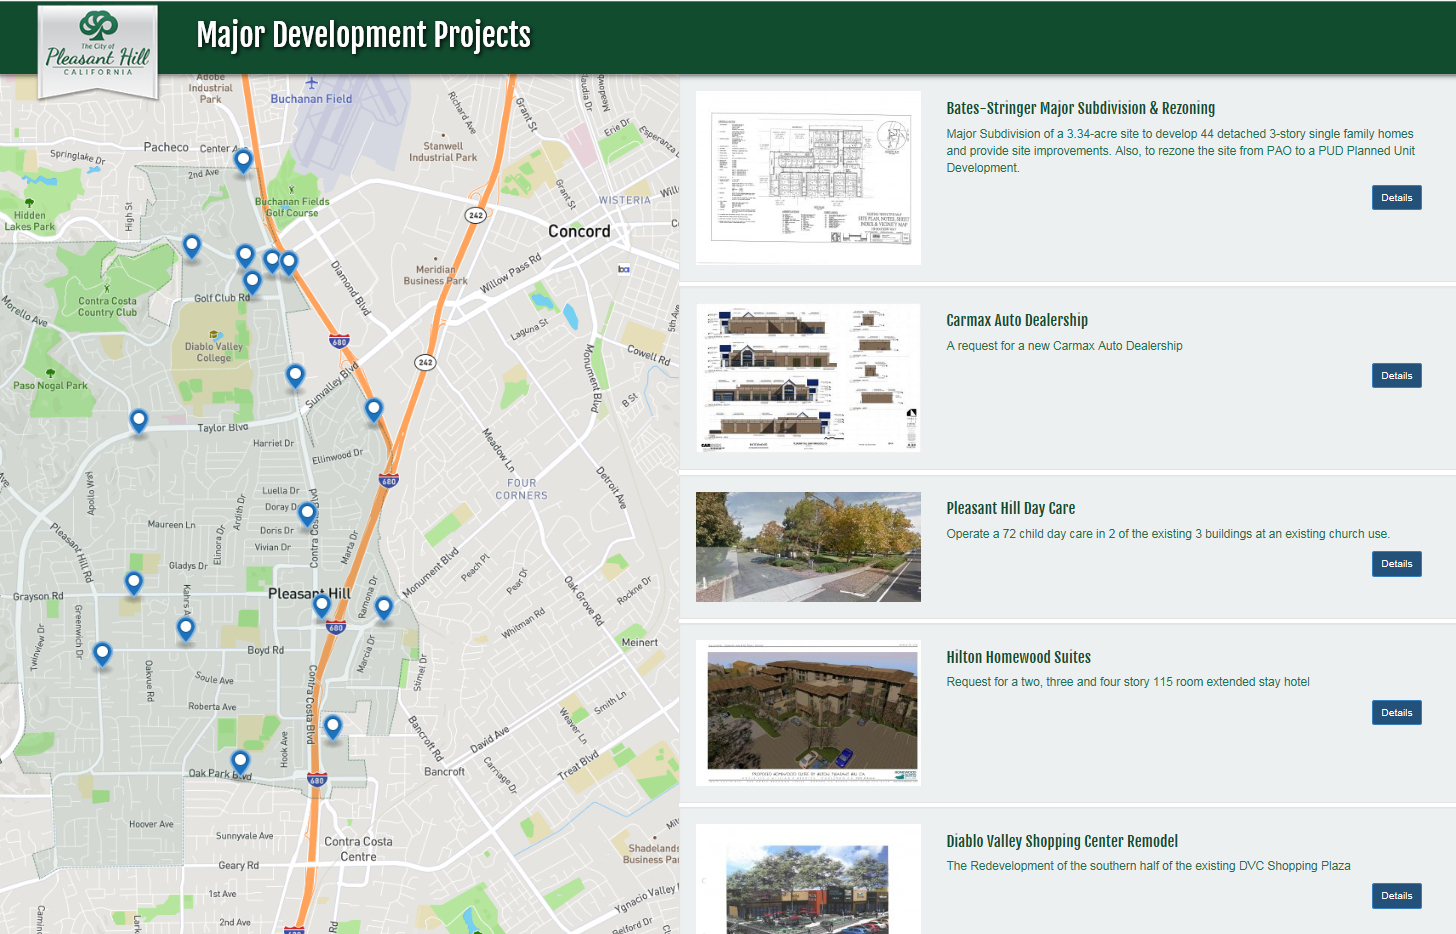 development projects interactive map for Pleasant Hill.jpg